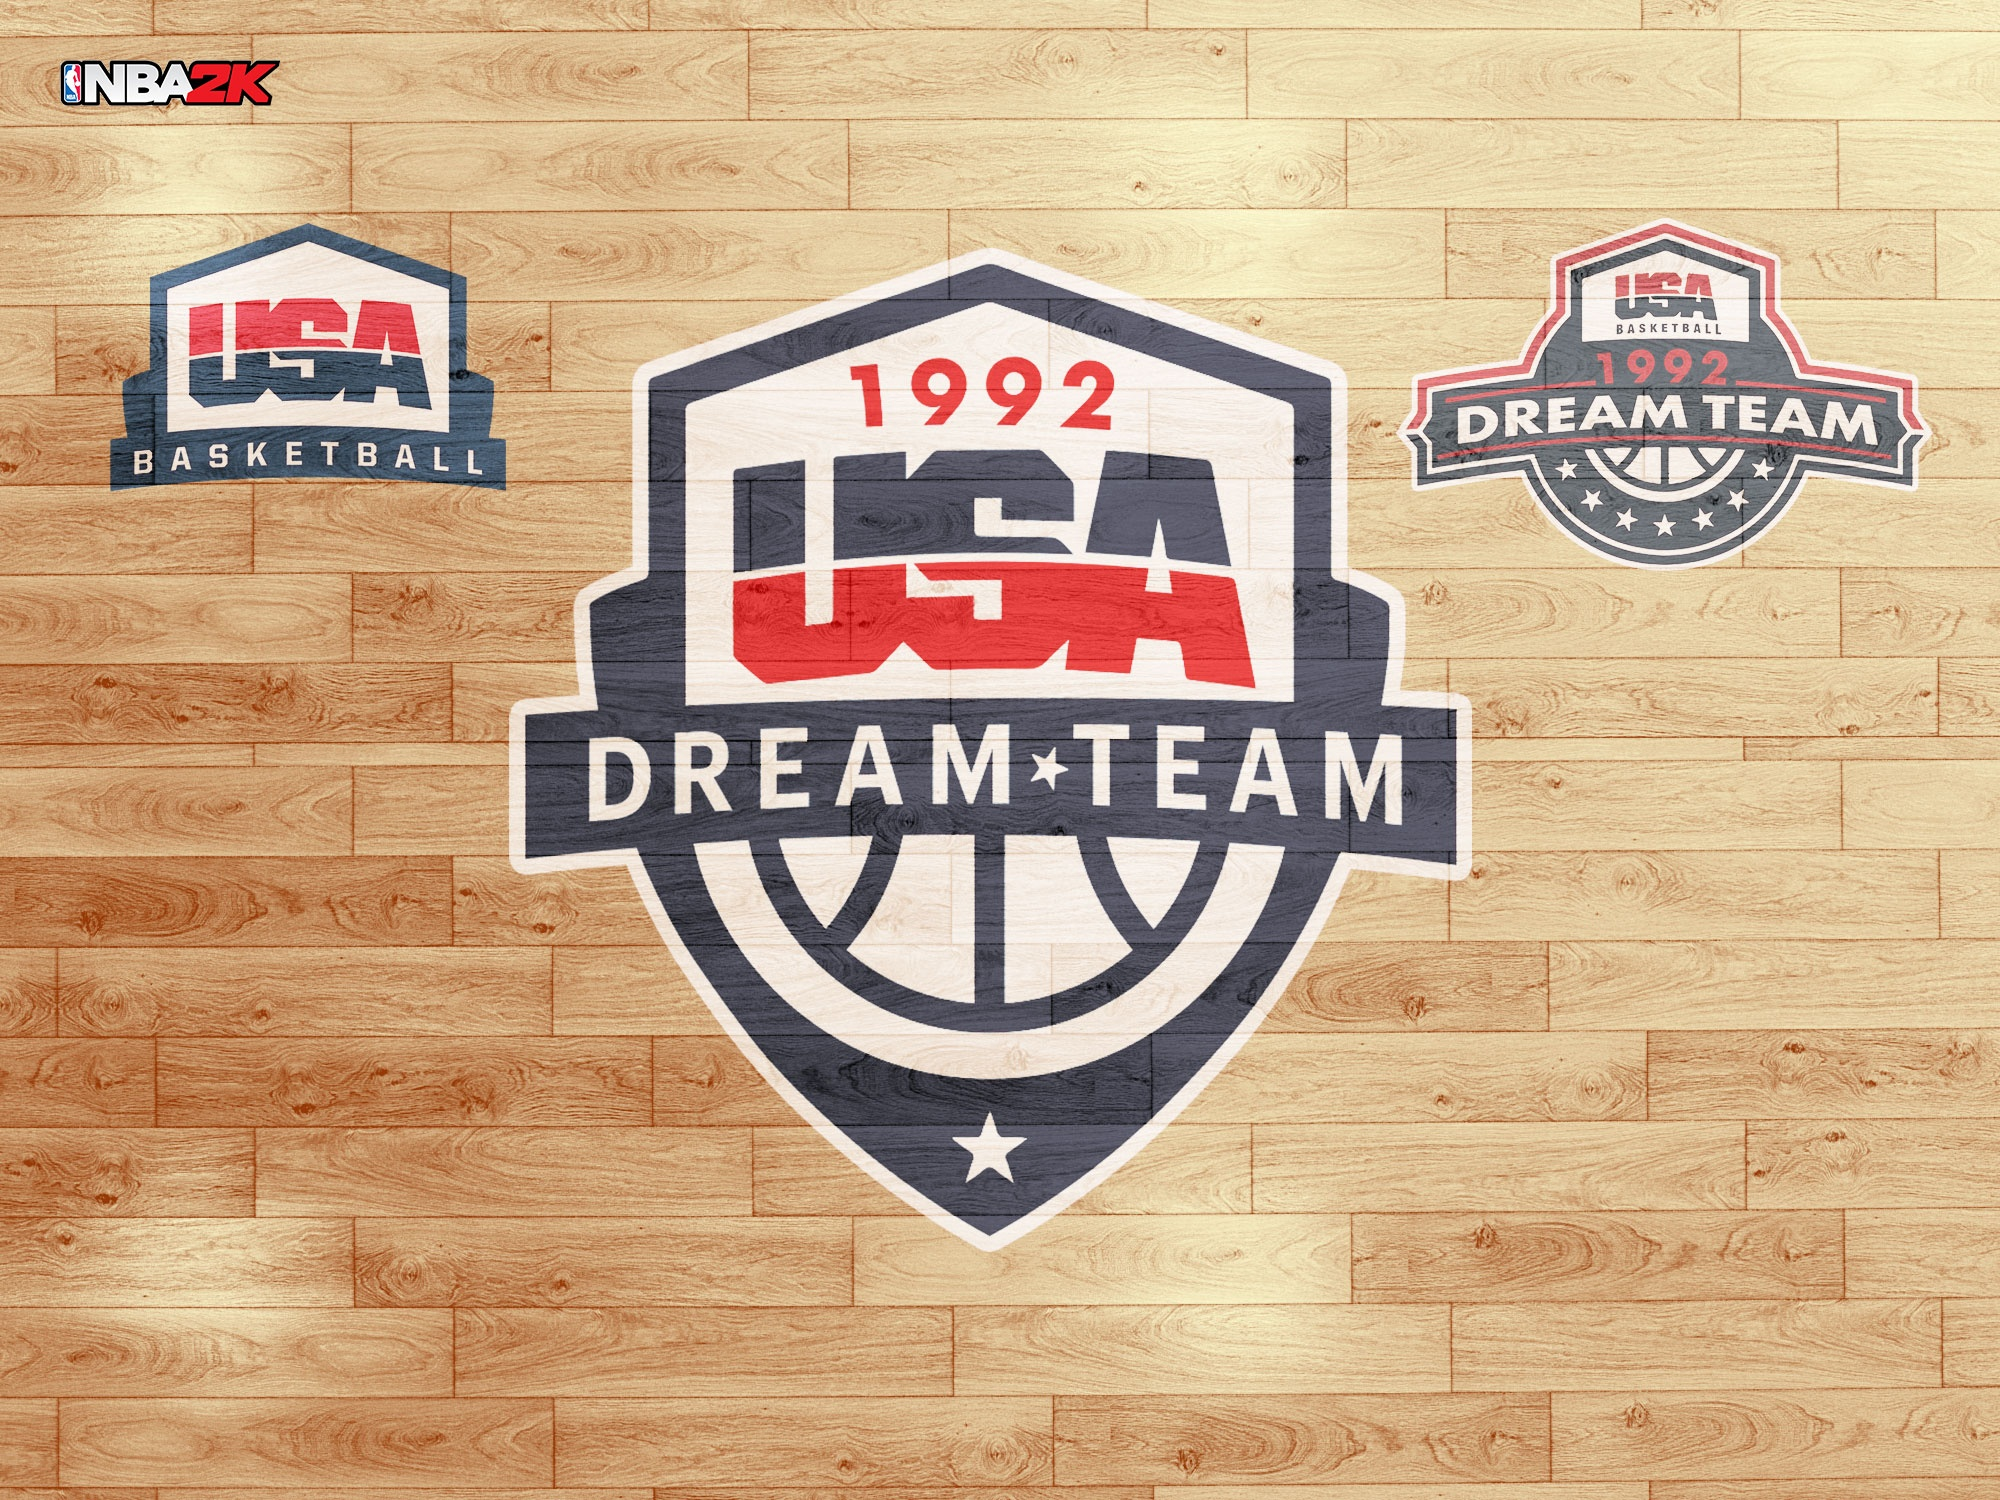 1992 USA Dream Team Jersey & Arena